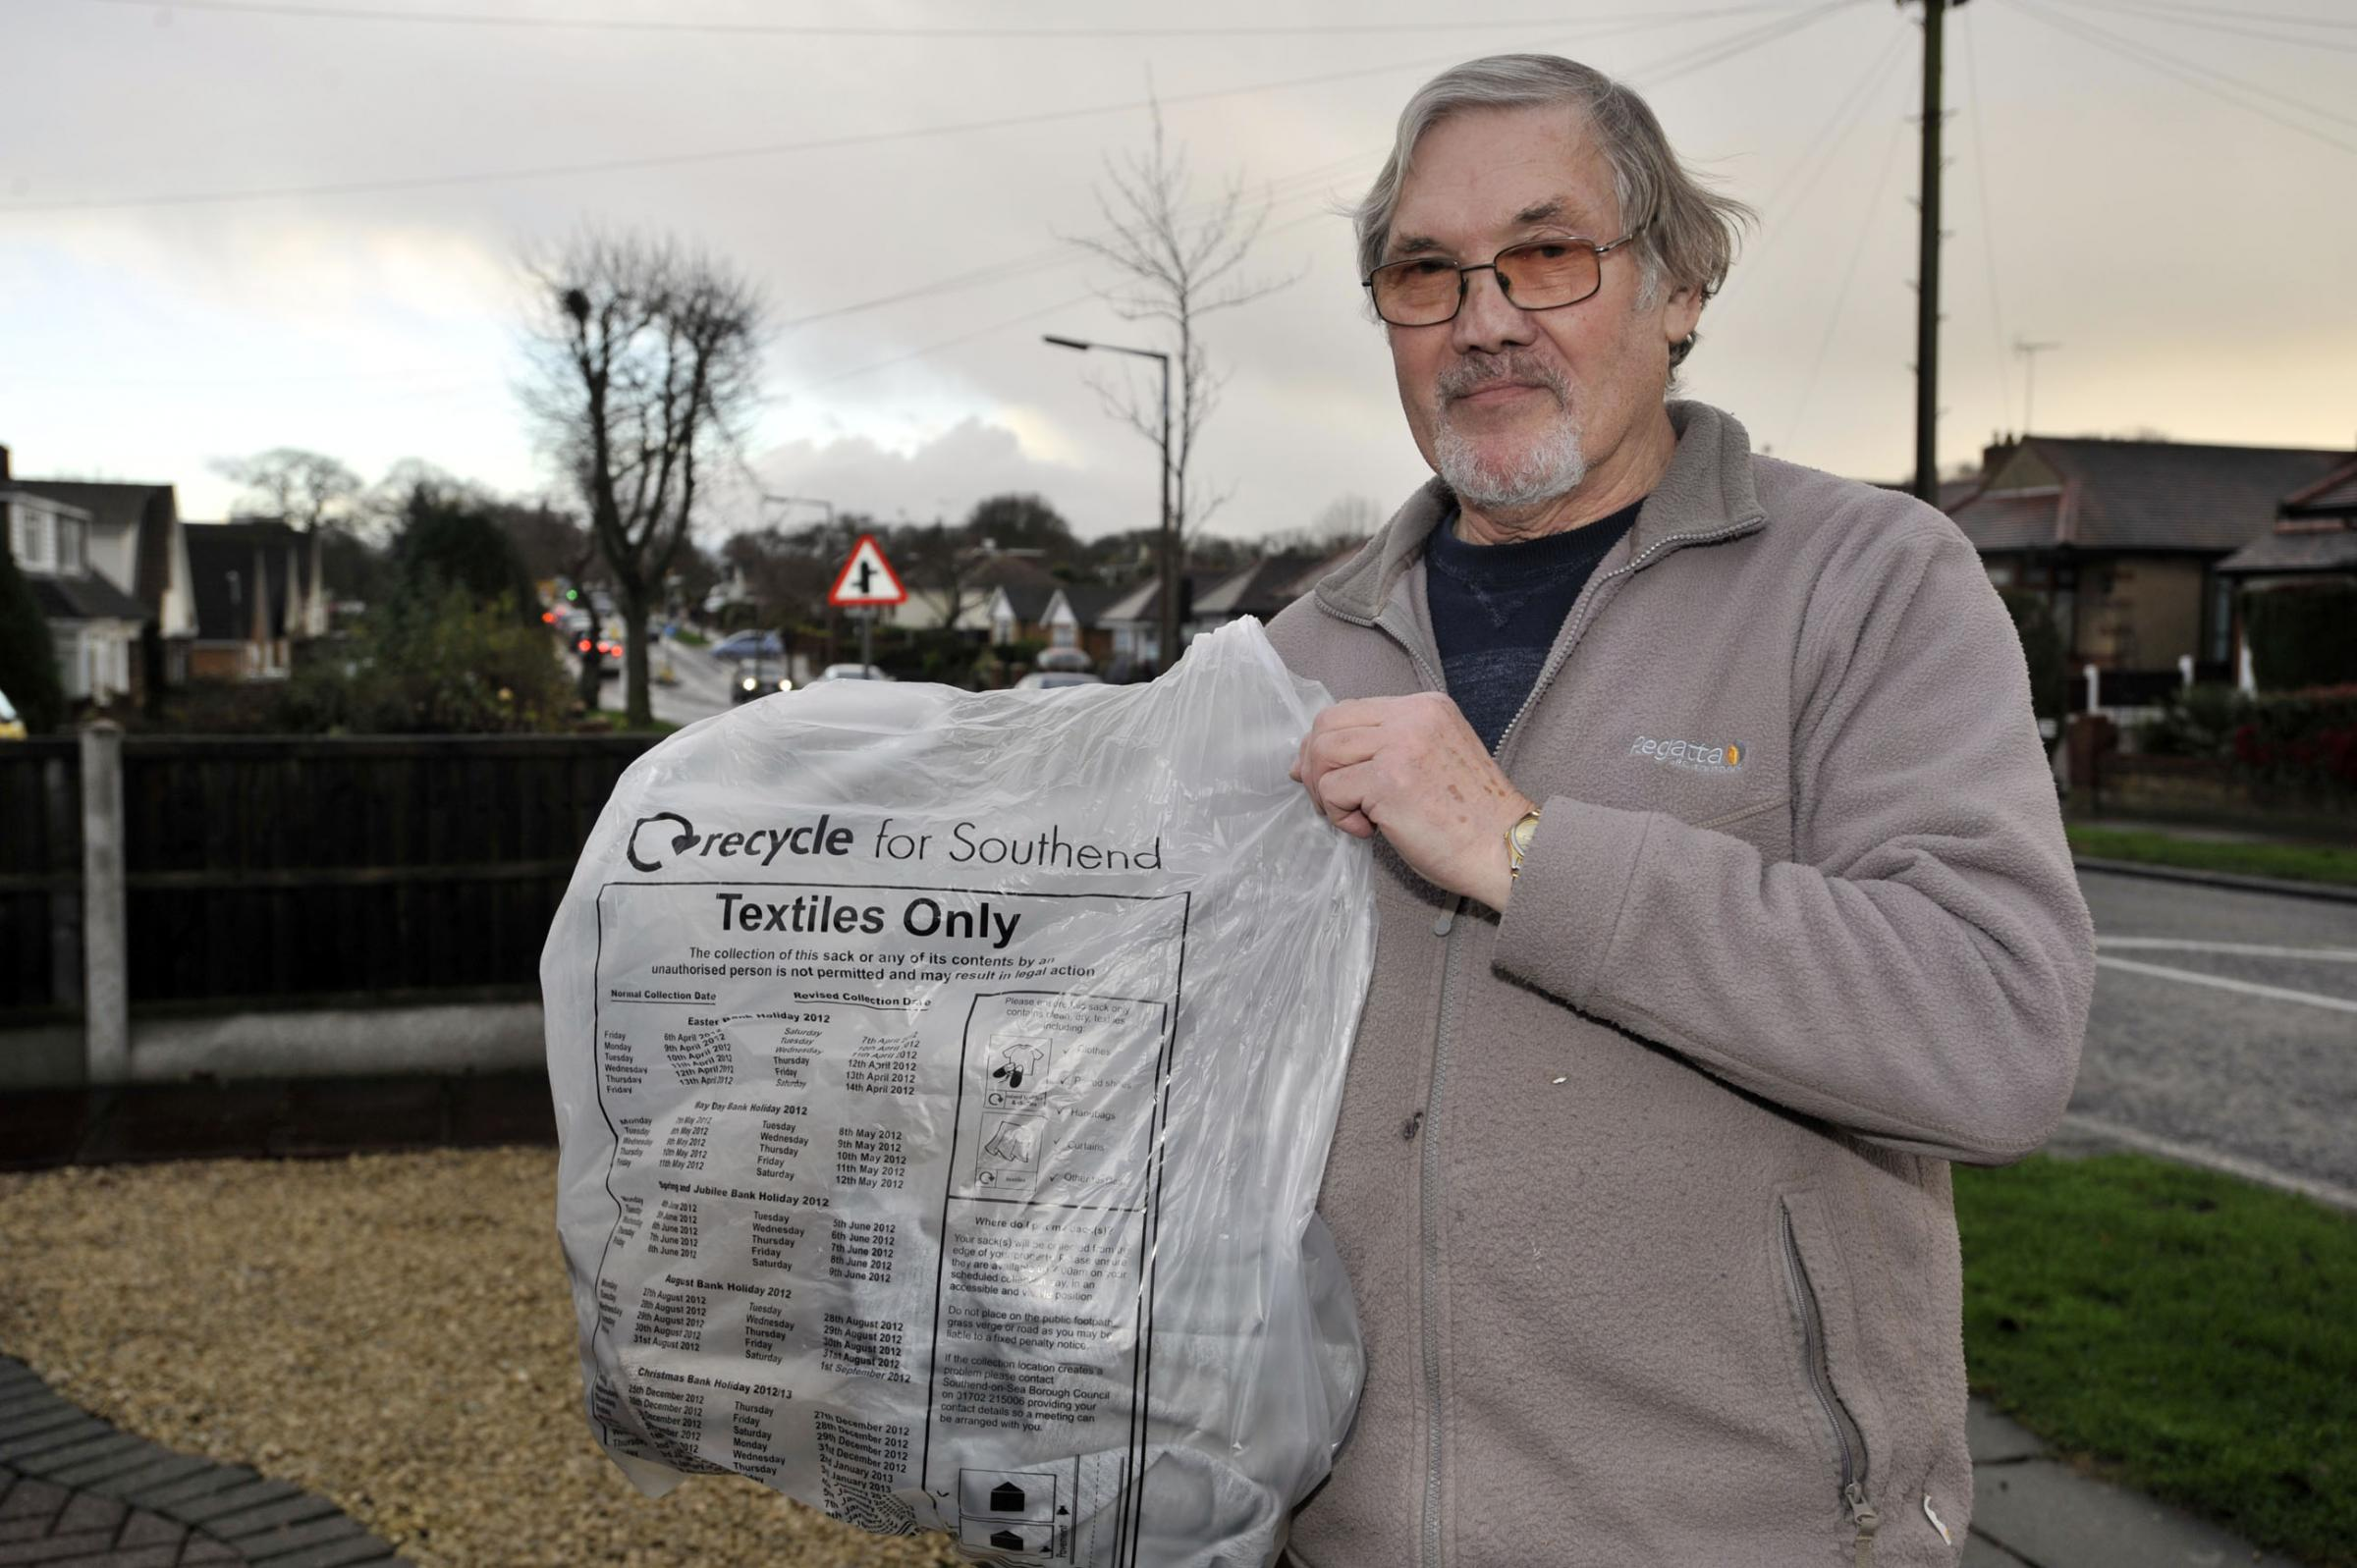 David Woods, of The Fairway, Eastwood, said he had seen a white van steal textile sacks every Monday for months